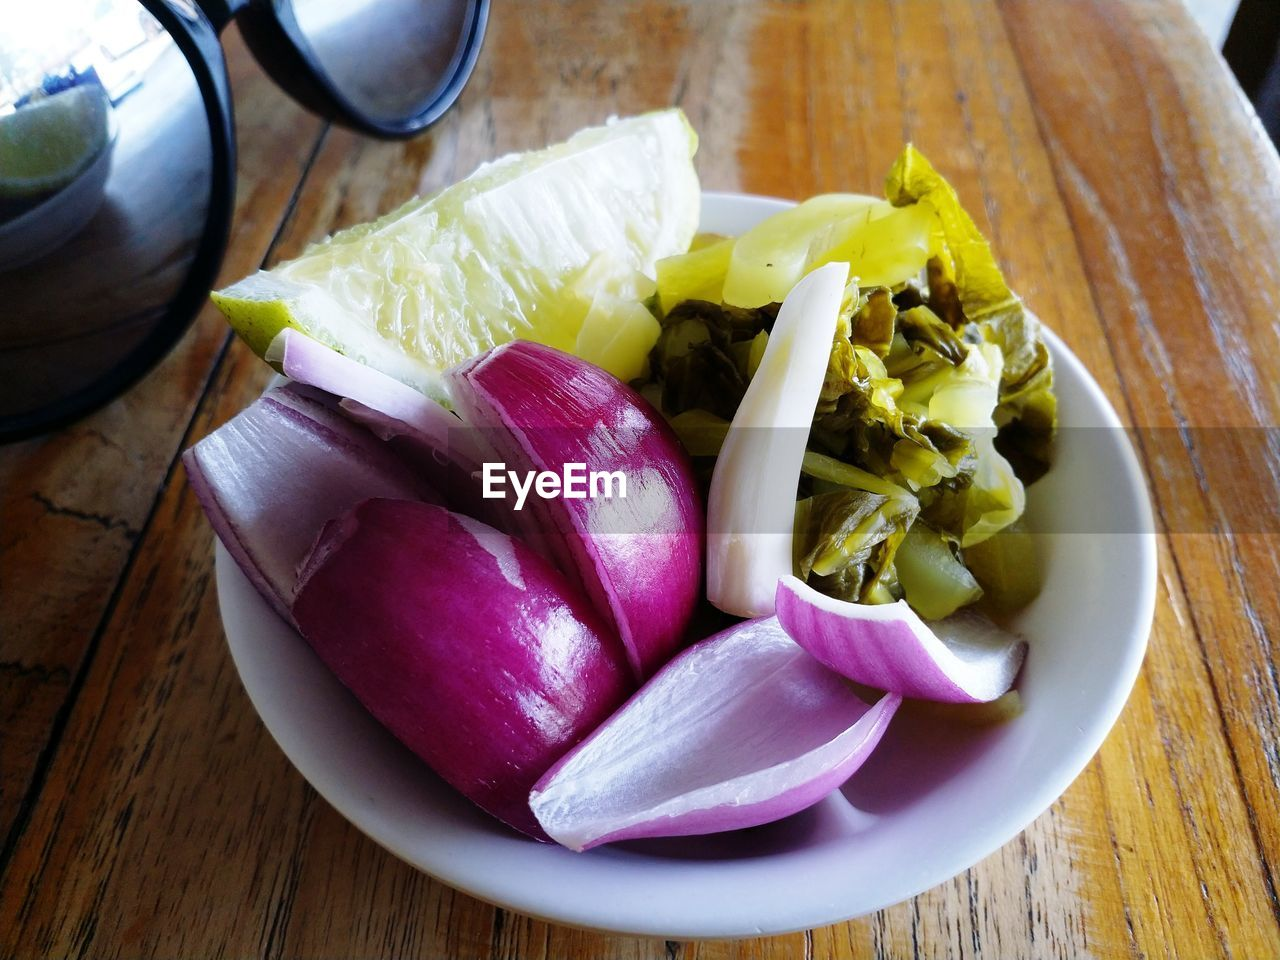 food, food and drink, freshness, vegetable, table, wellbeing, healthy eating, onion, indoors, close-up, still life, raw food, wood - material, no people, purple, pink color, slice, high angle view, plate, chopped, vegetarian food